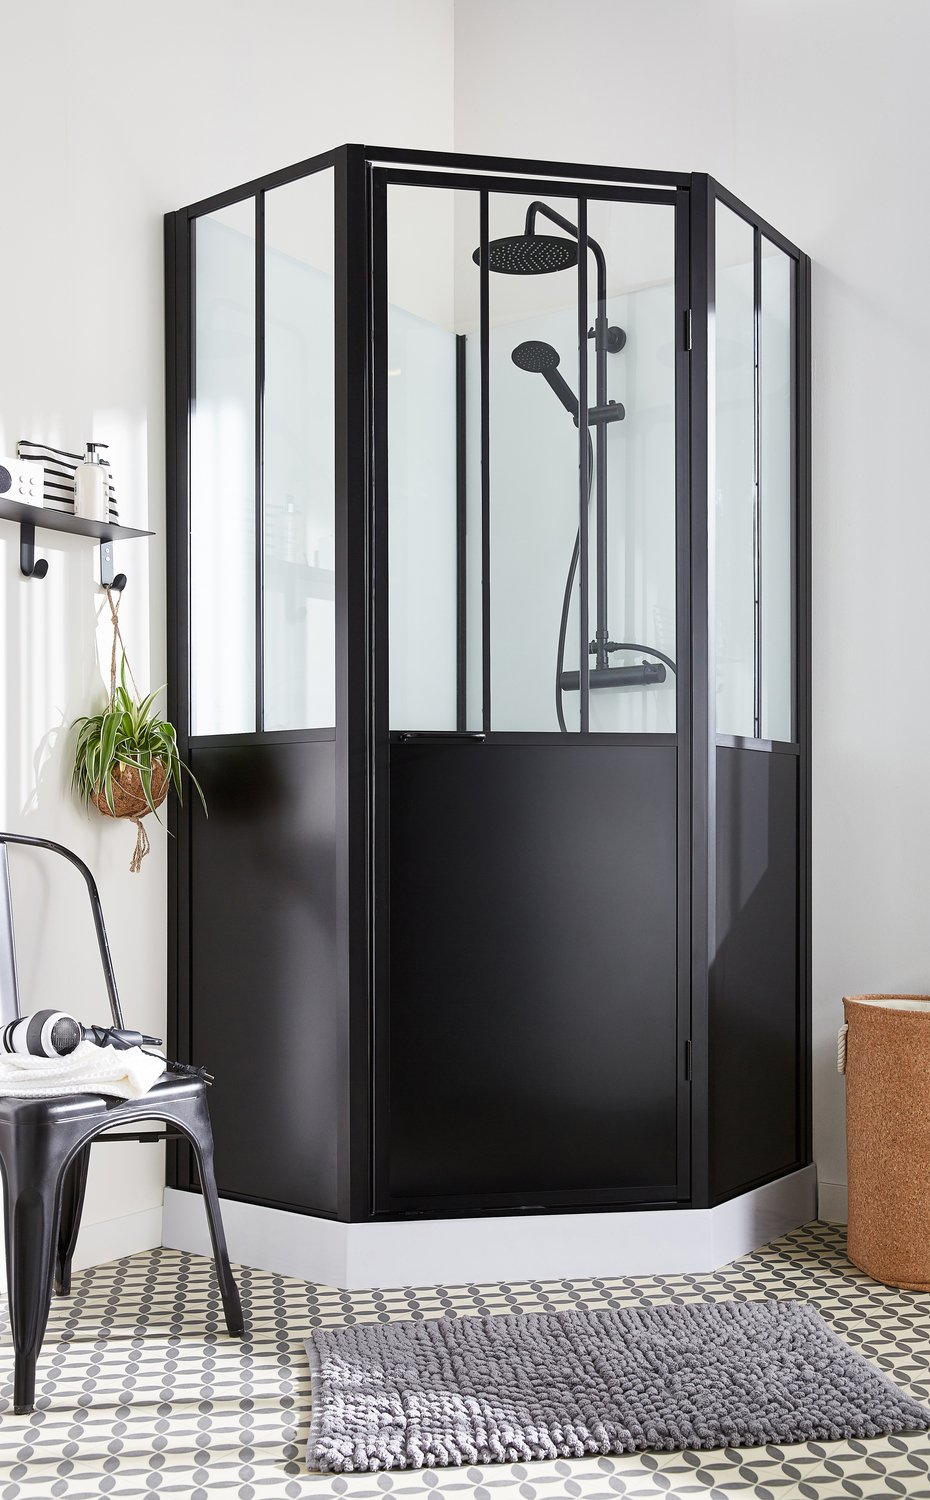 une cabine de douche fa on verri re d 39 atelier leroy merlin. Black Bedroom Furniture Sets. Home Design Ideas